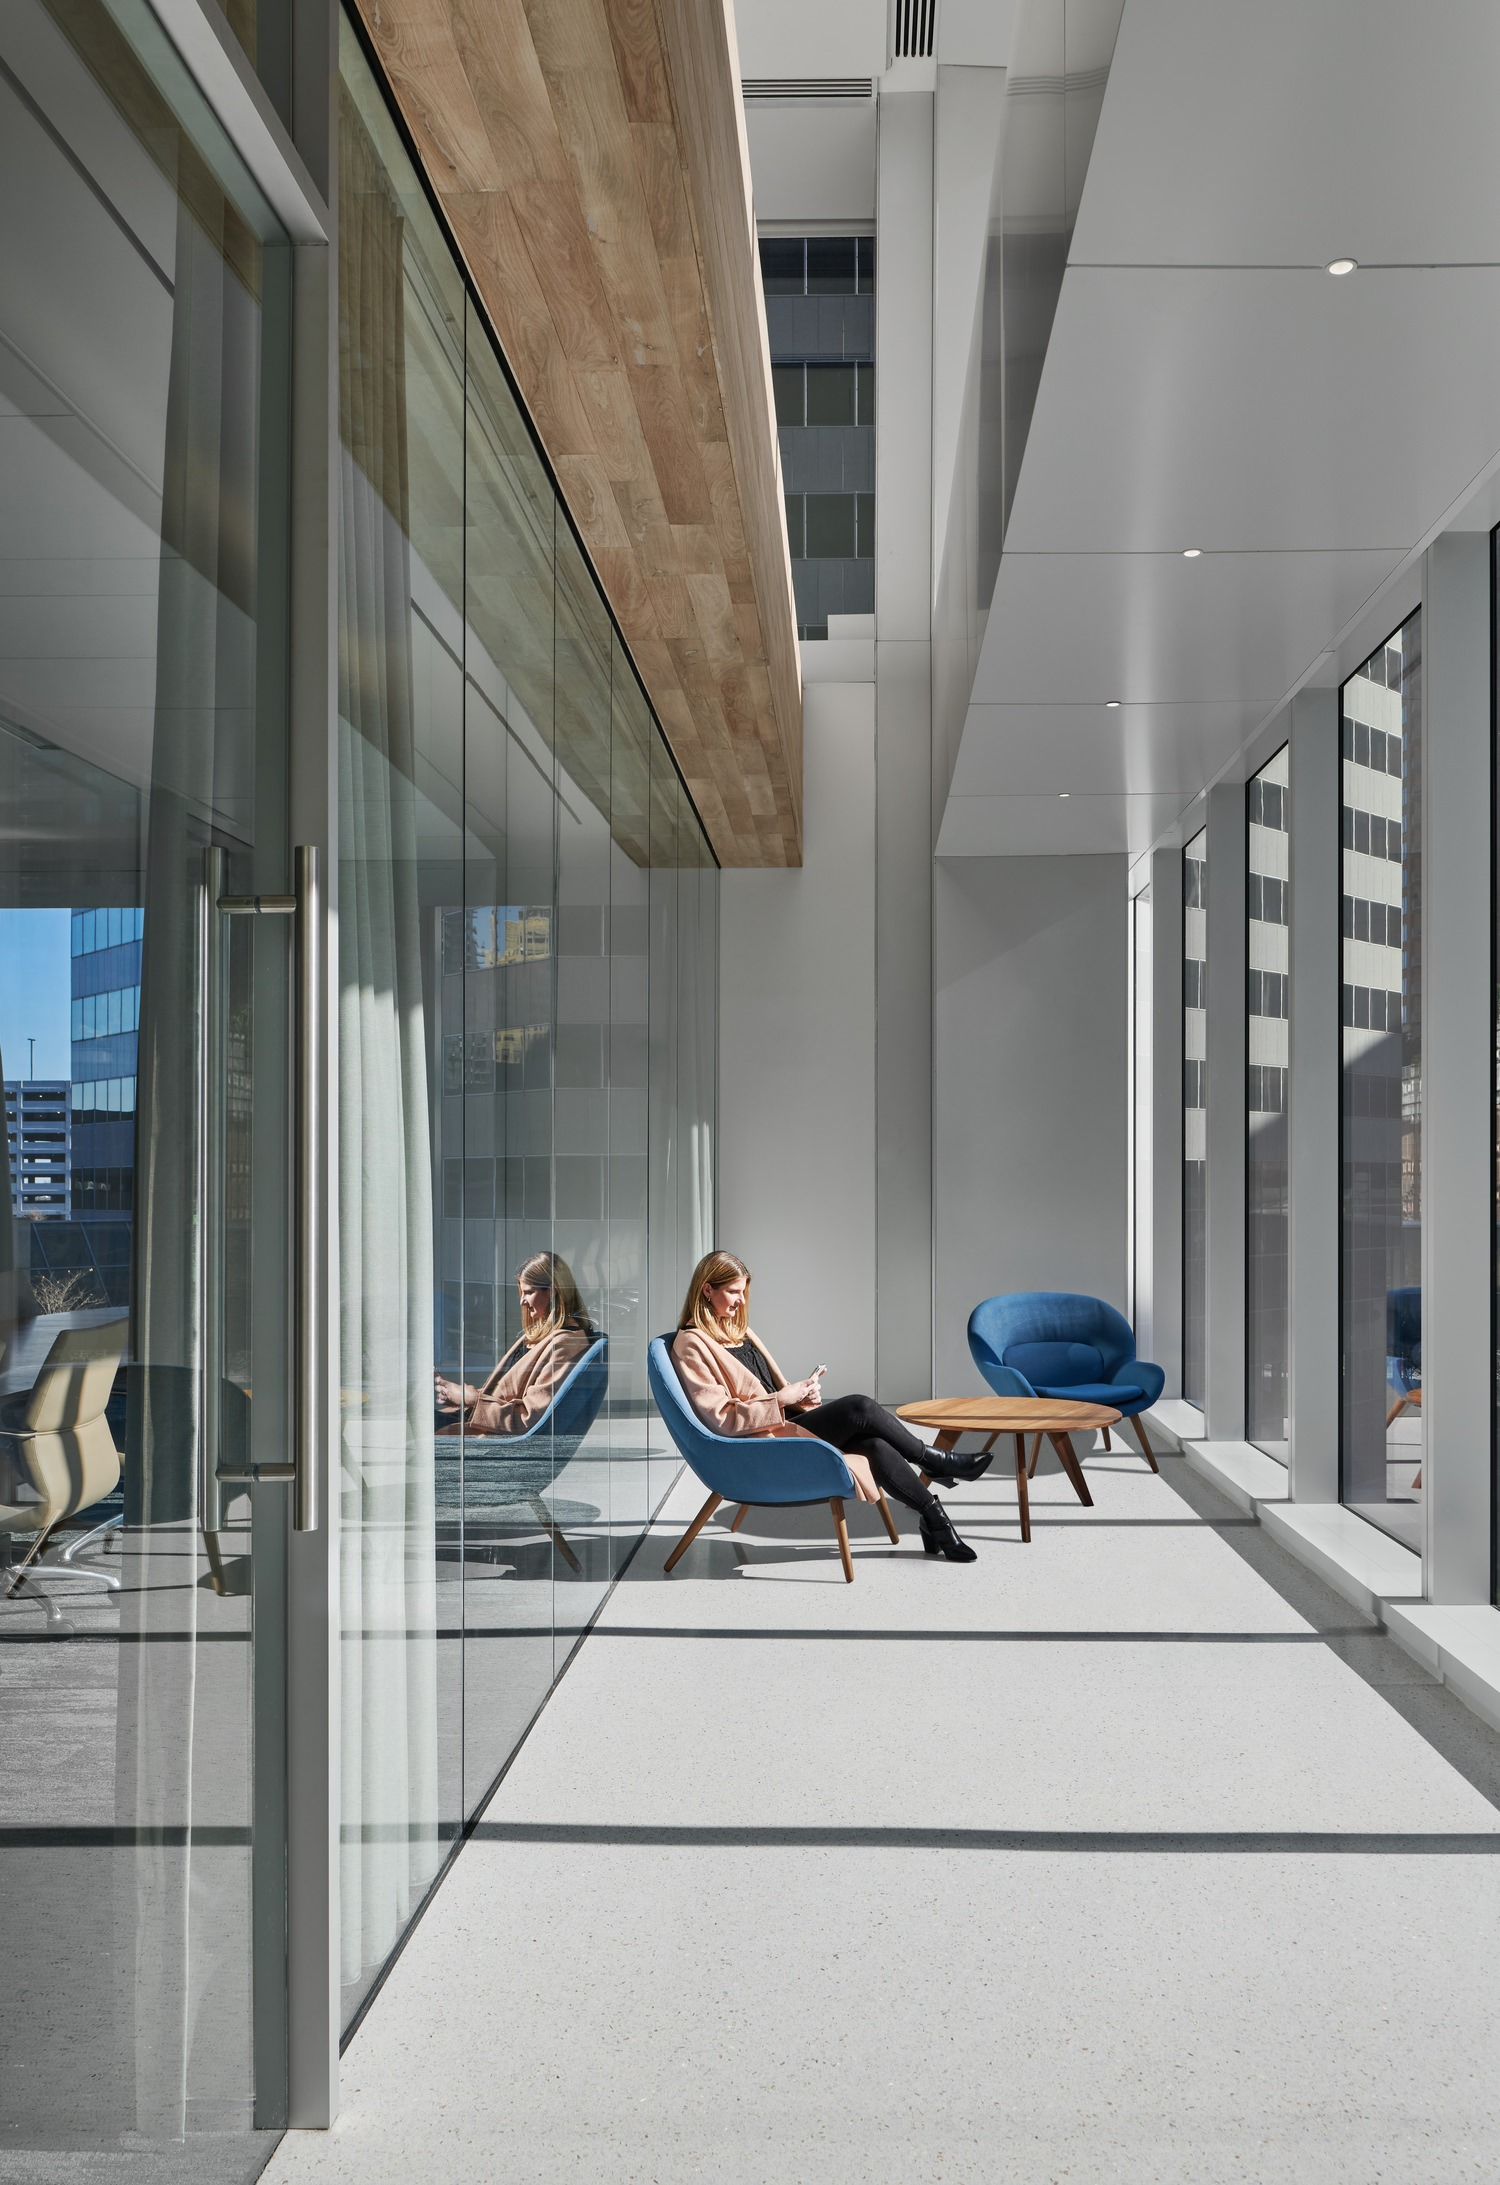 A person that is sitting in a lounge chair in an office area in front of a glass wall that leads to other rooms.